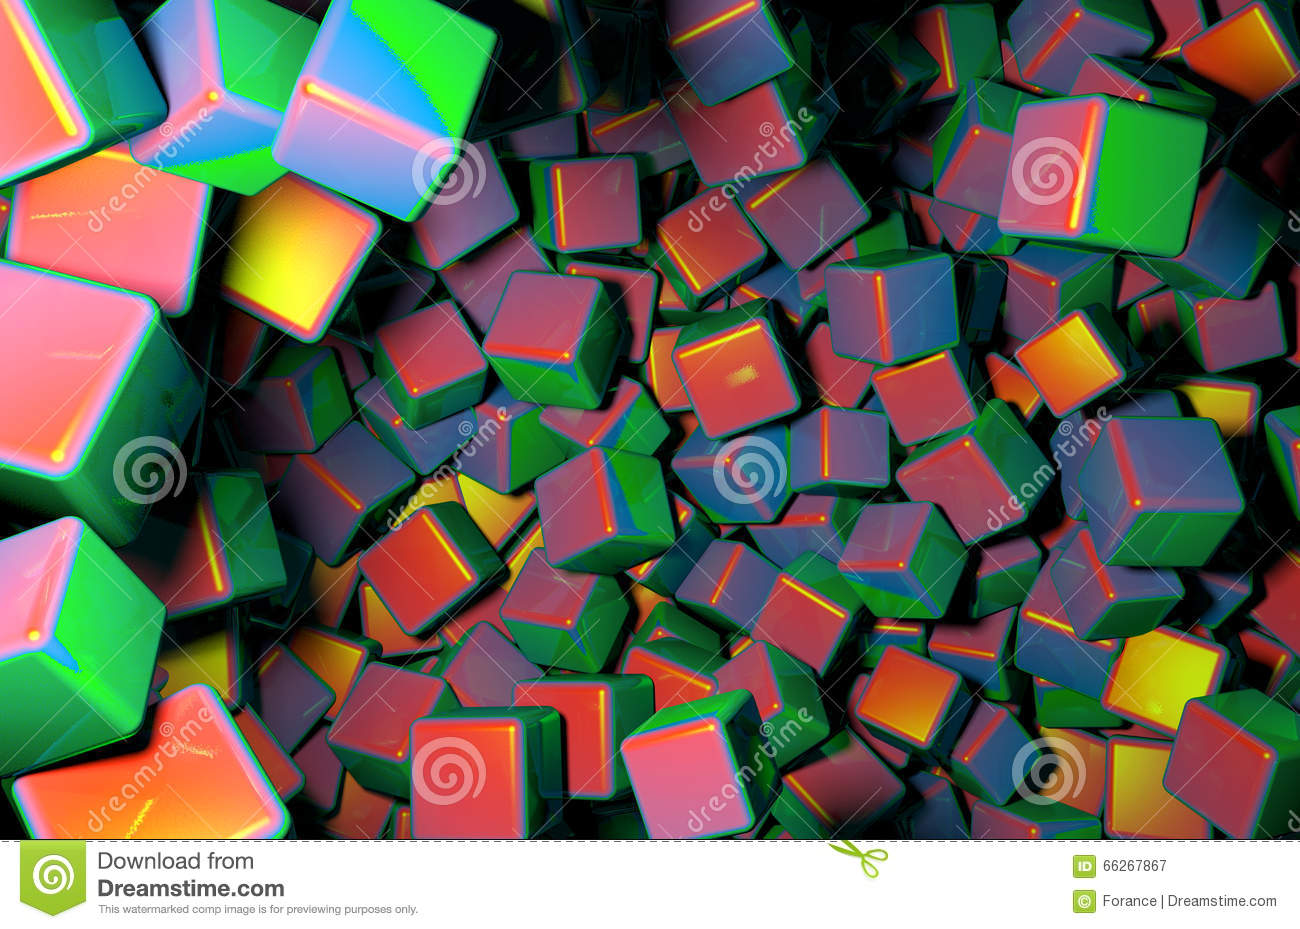 Rendered 3D Cubes Randomly Distributed in Space, Various Colors of Cubes